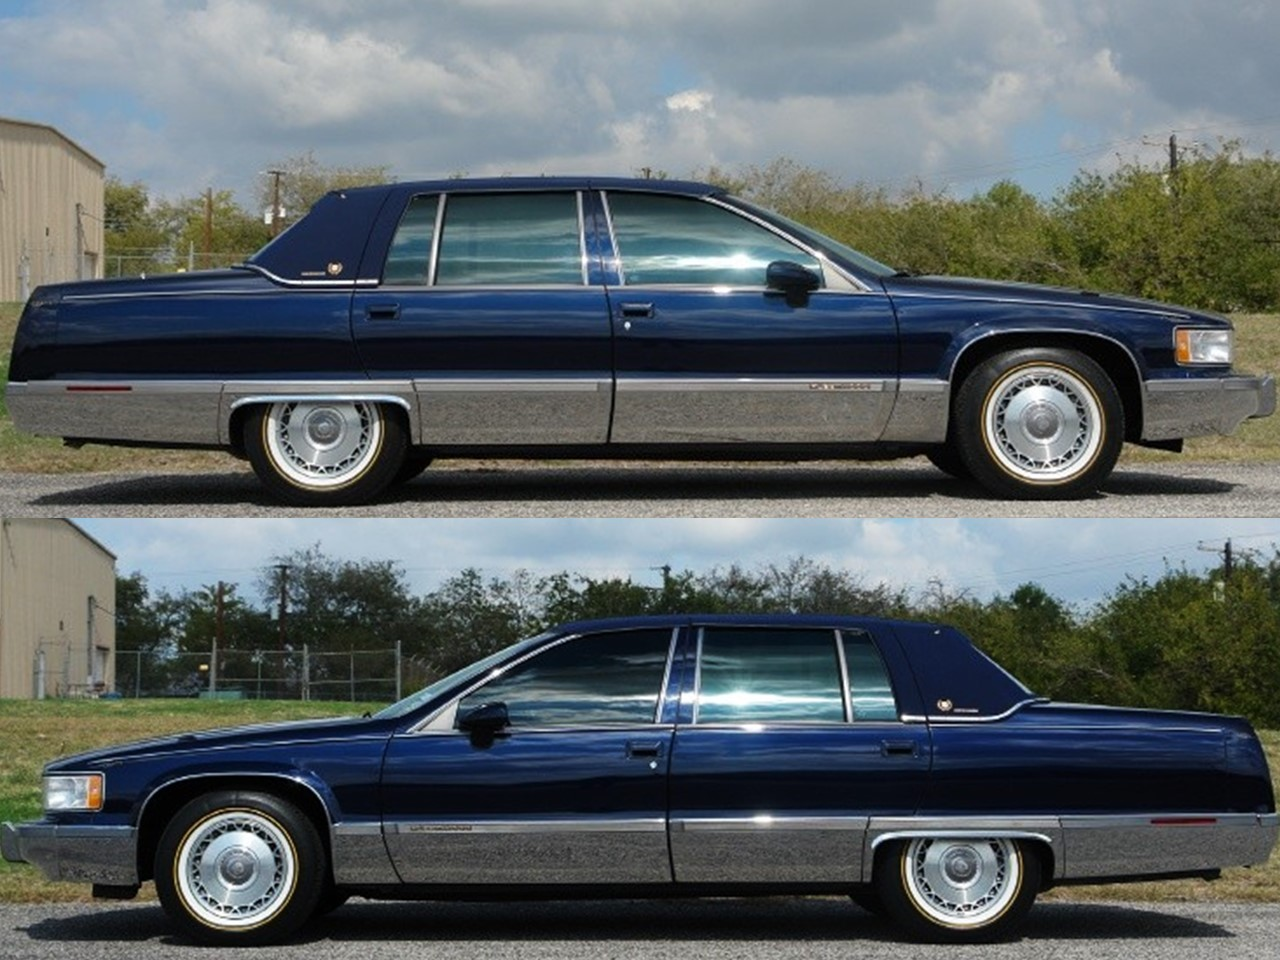 1994 Cadillac Fleetwood Brougham The End Of An